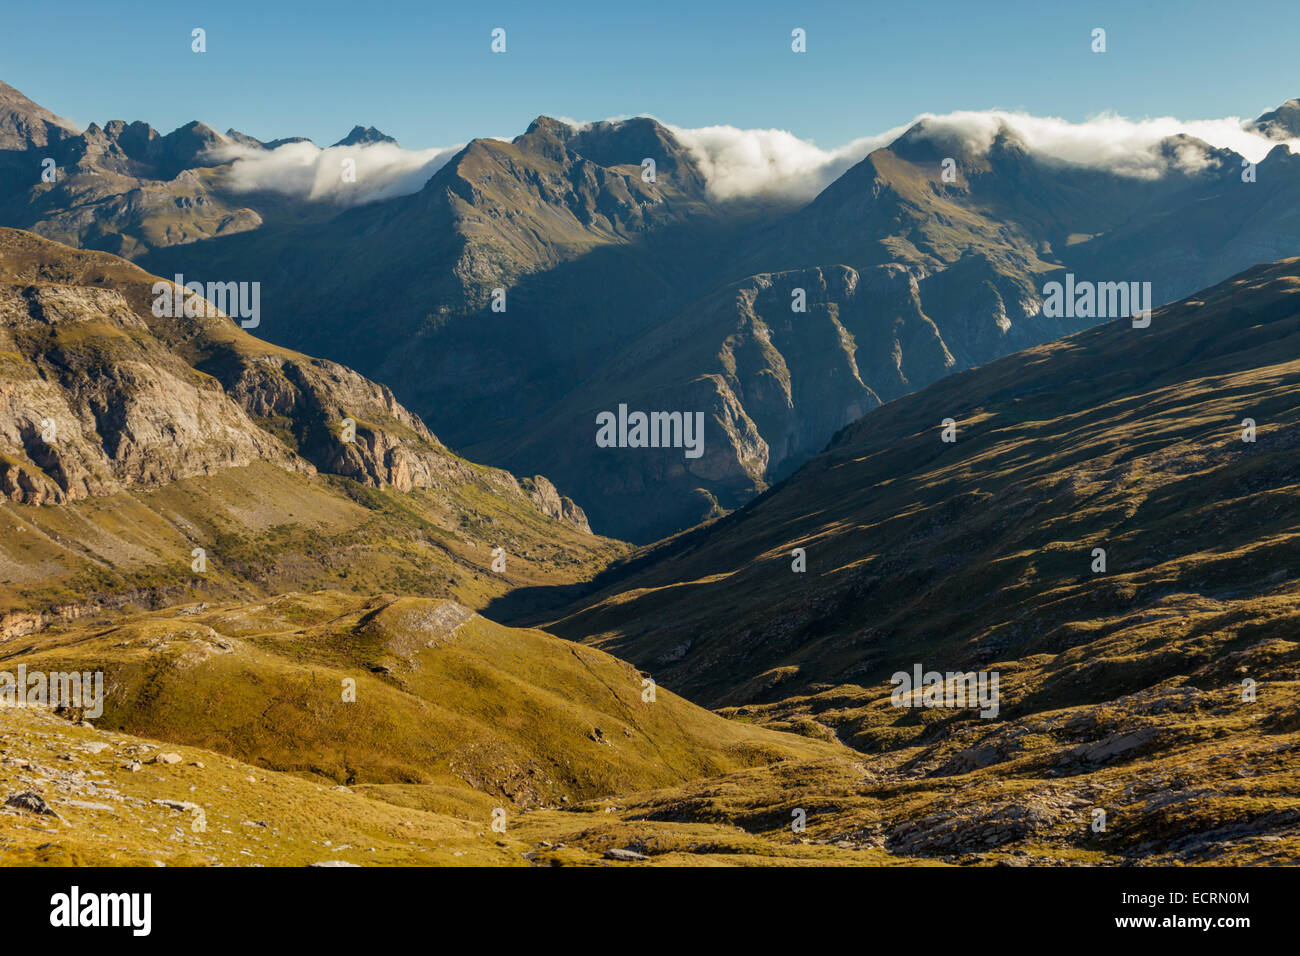 Morning in Ordiso valley. Pyrenees mountains near Torla, Spain. Stock Photo